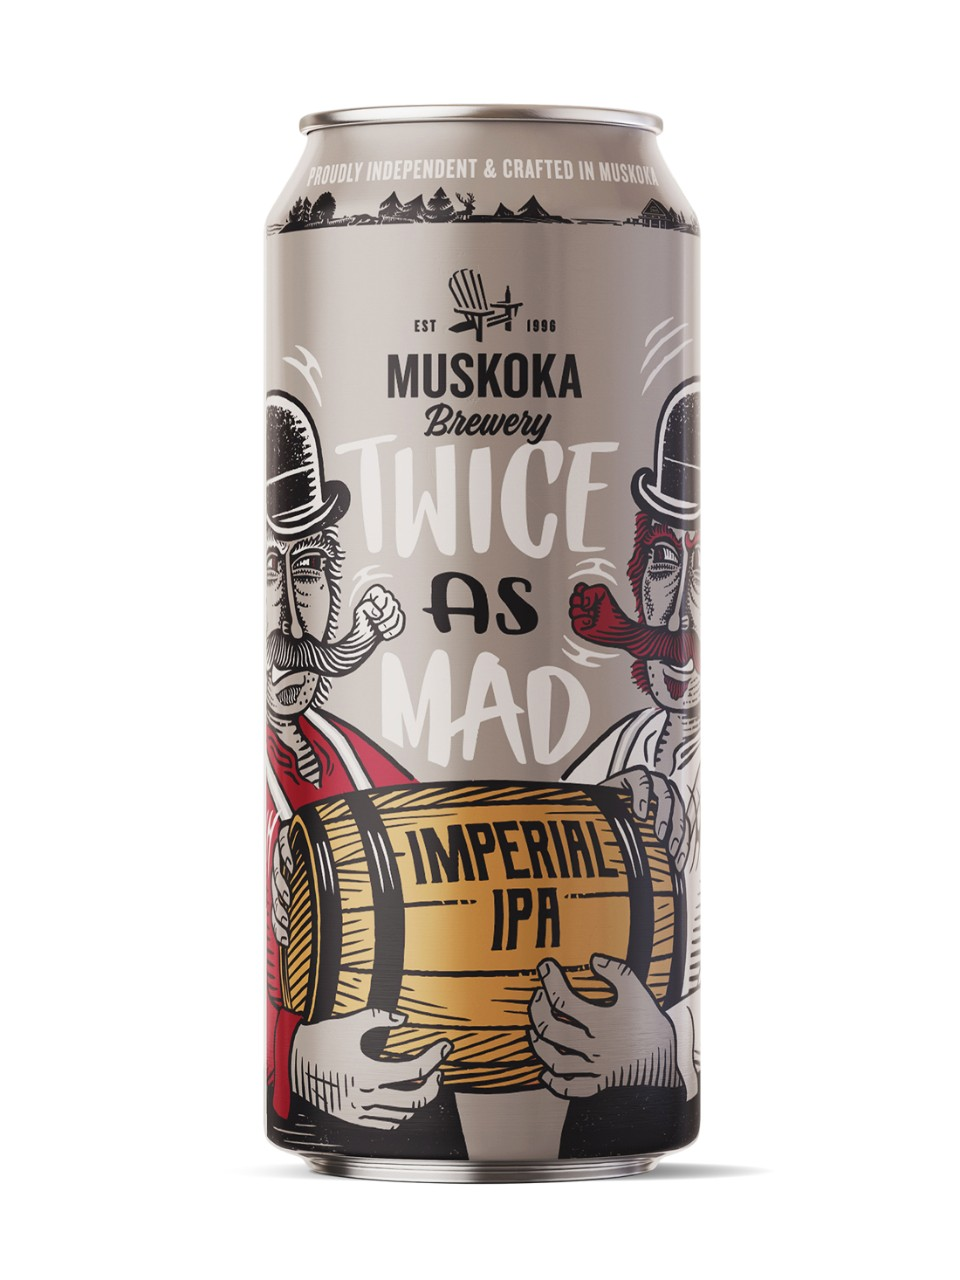 Twice As Mad Tom IPA